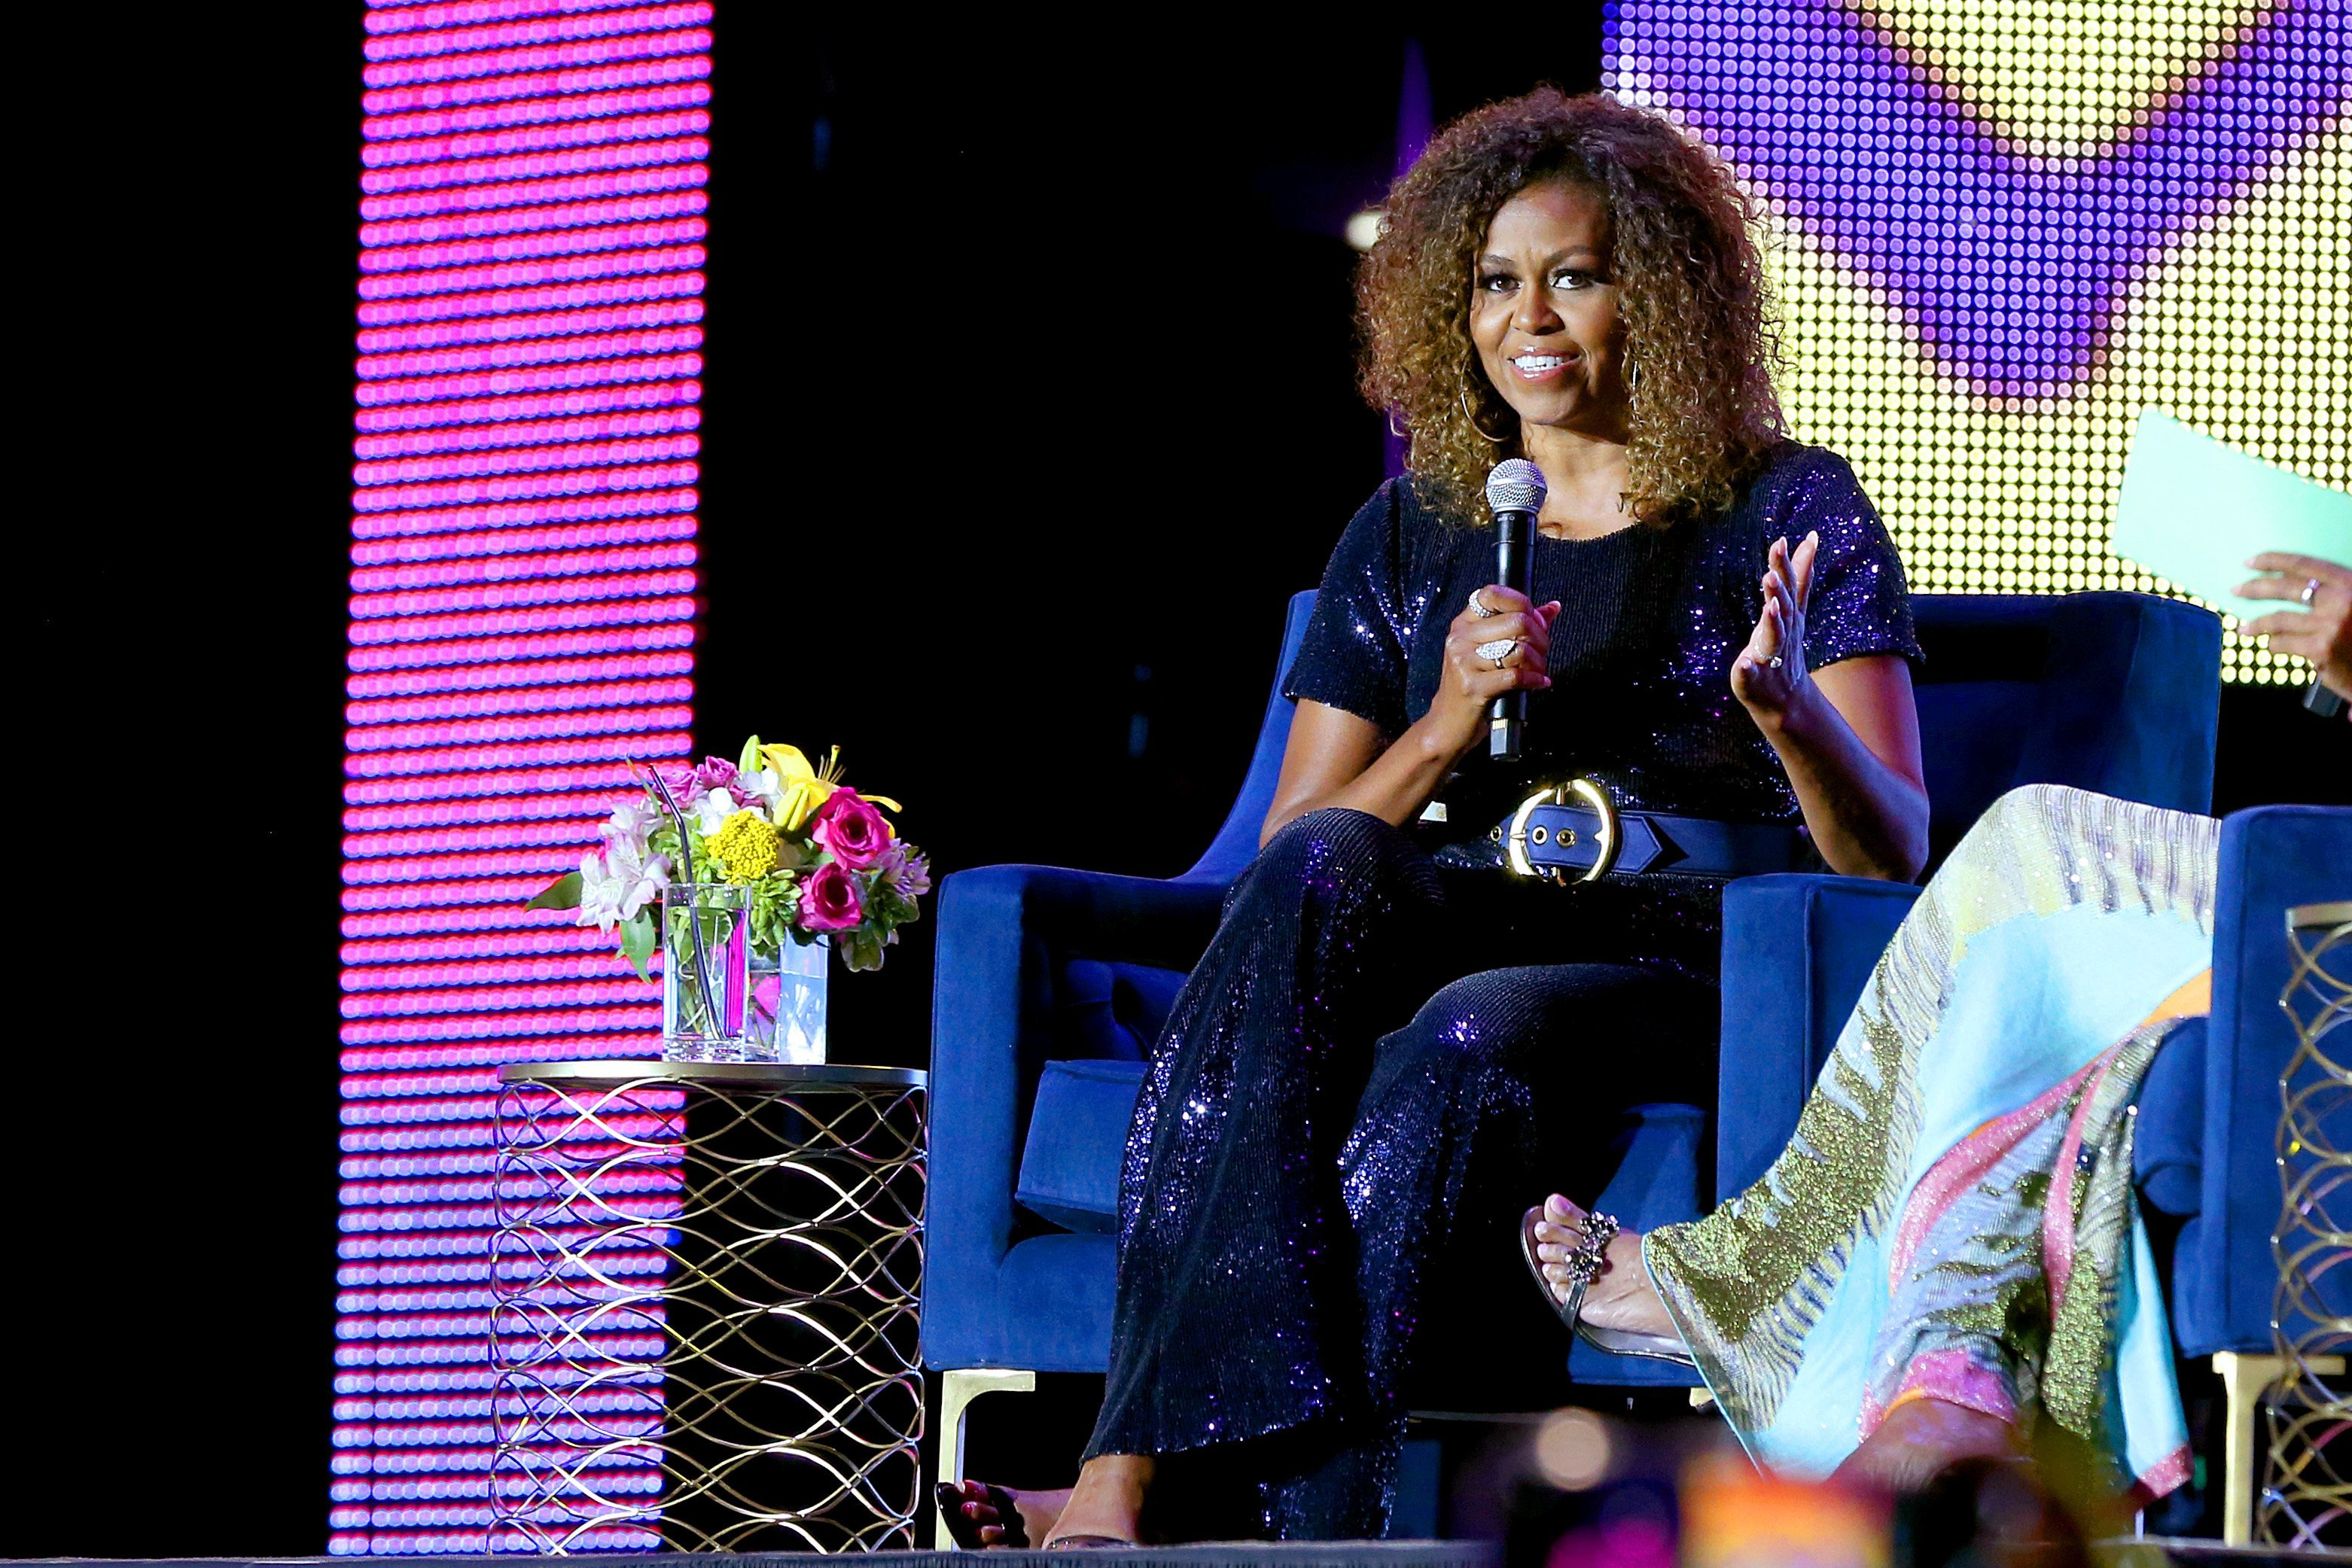 Michelle Obama at the 2019 ESSENCE Festival in New Orleans, Louisiana | Photo: Getty Images